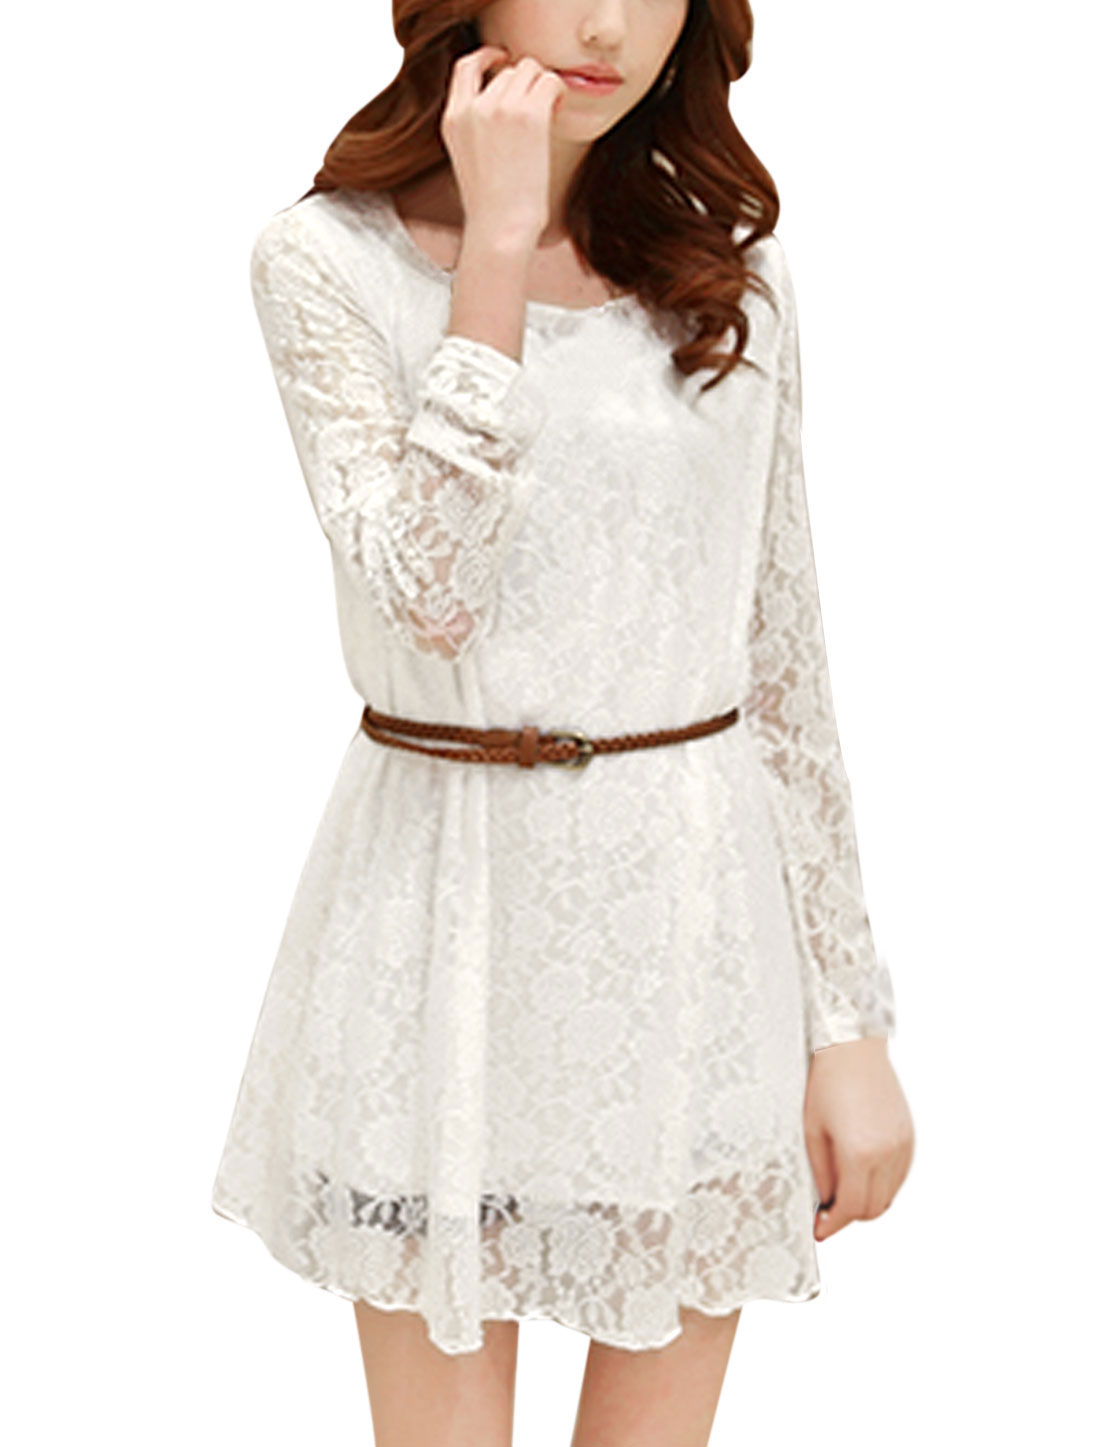 Lady Round Neck Long Sleeve Lace Lining Dress w Belt White S